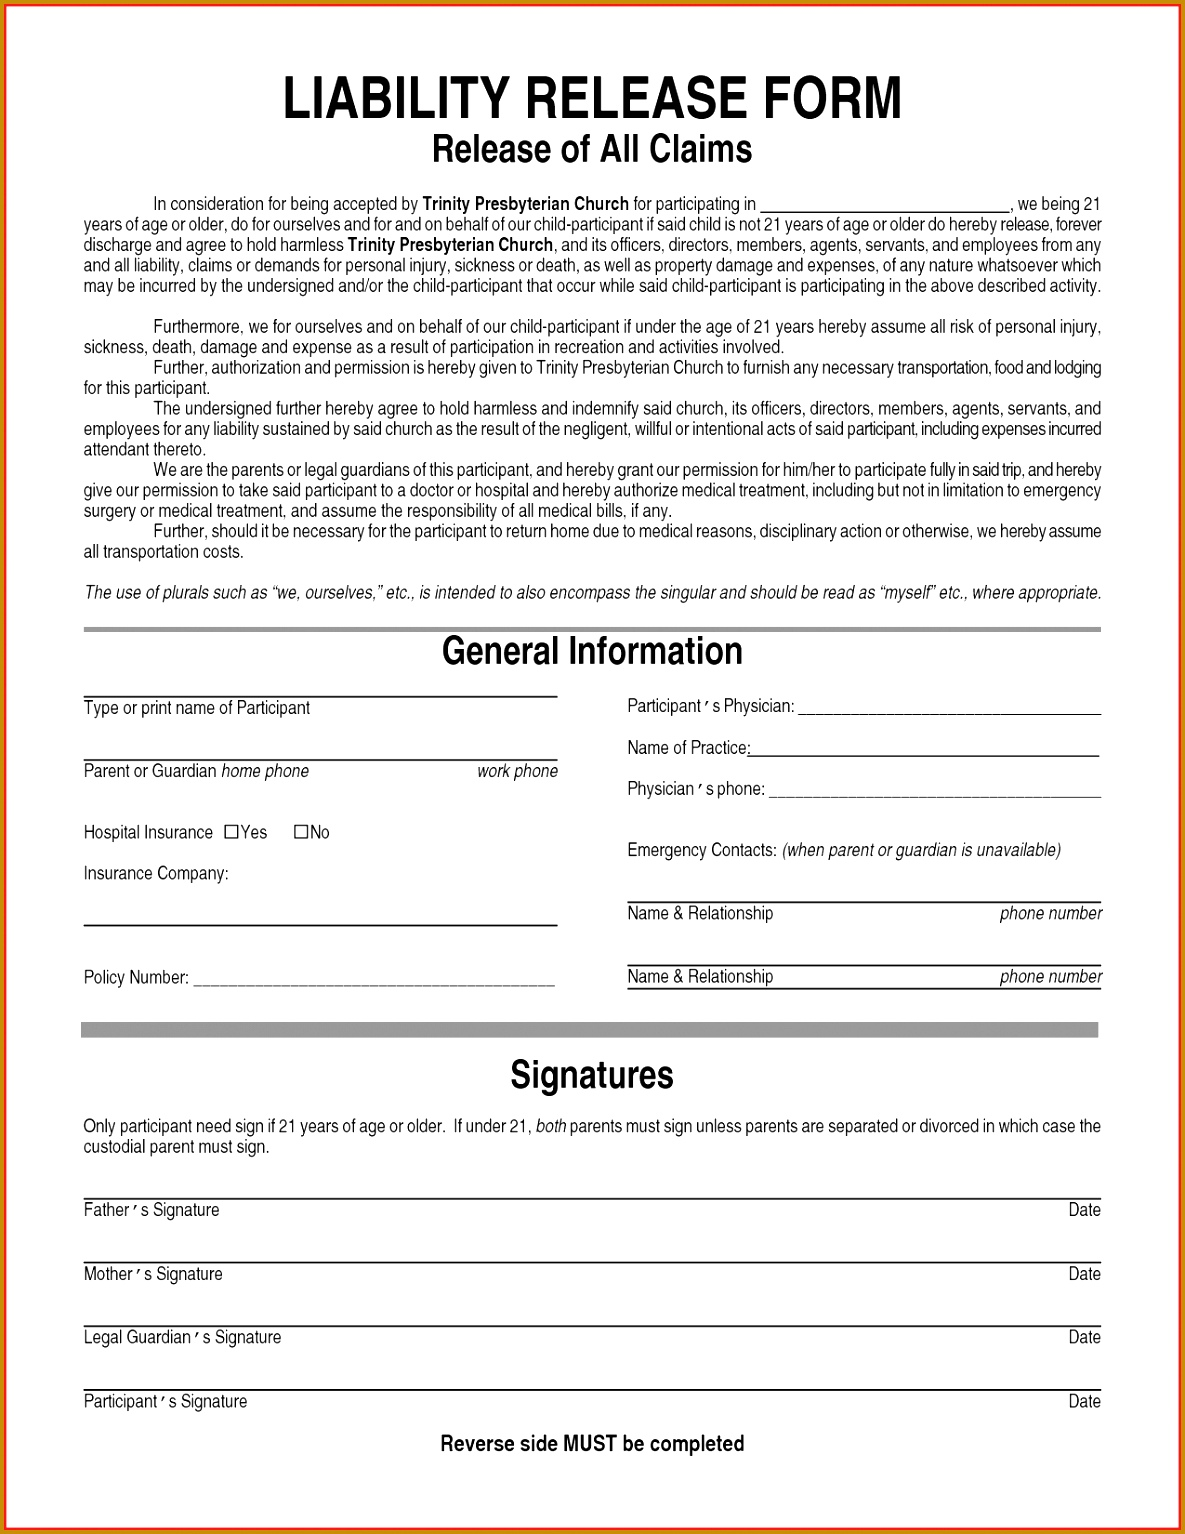 Waiver Form Template For Sports 53163 Sports Liability Waiver Form  Template Printable Survey Social Work